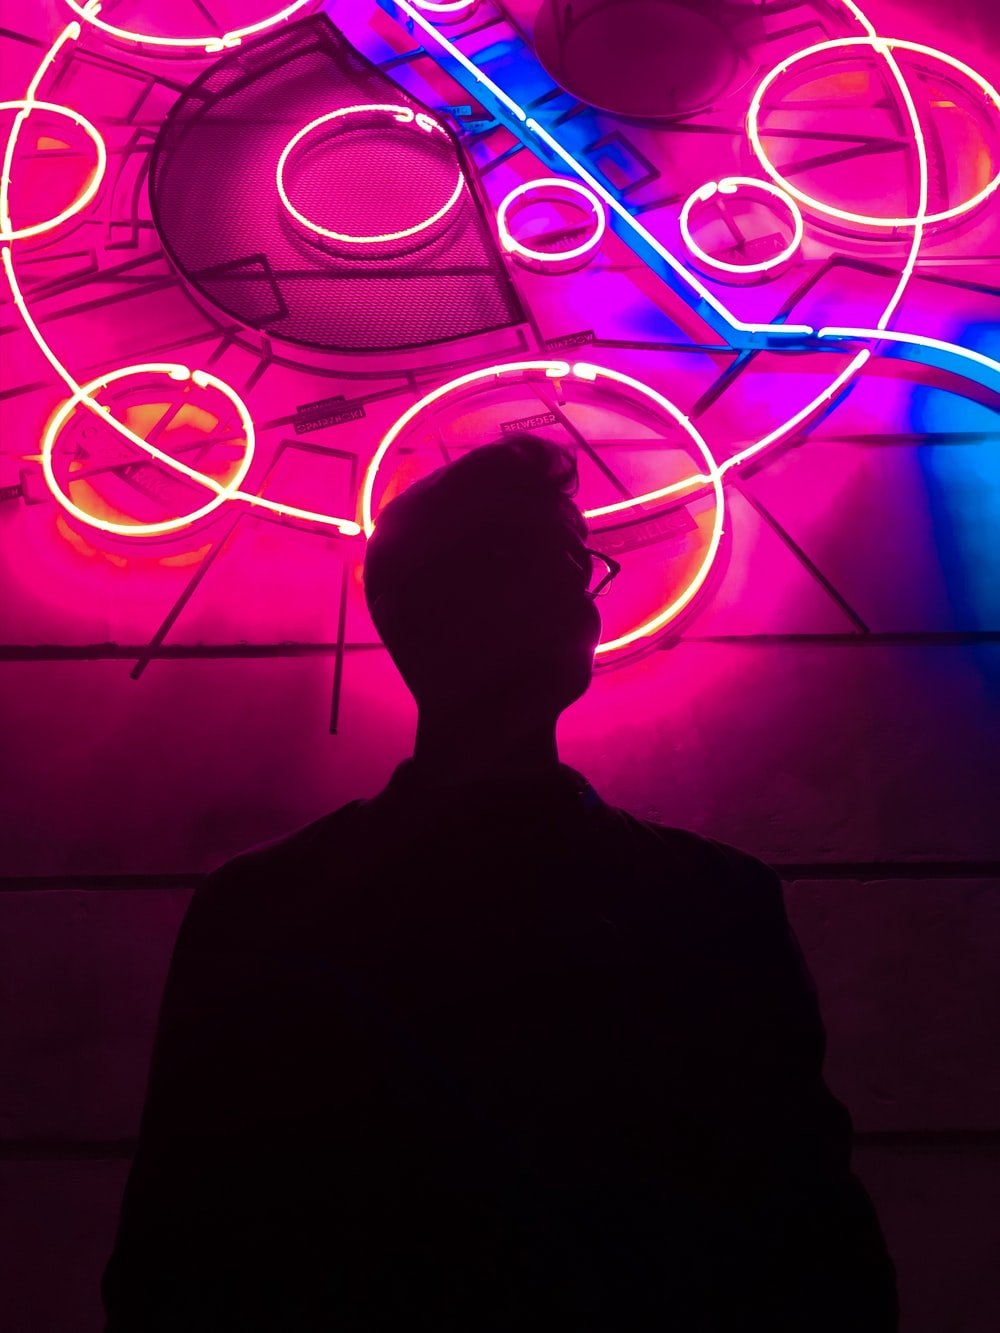 silhouette of man standing in front of neon light